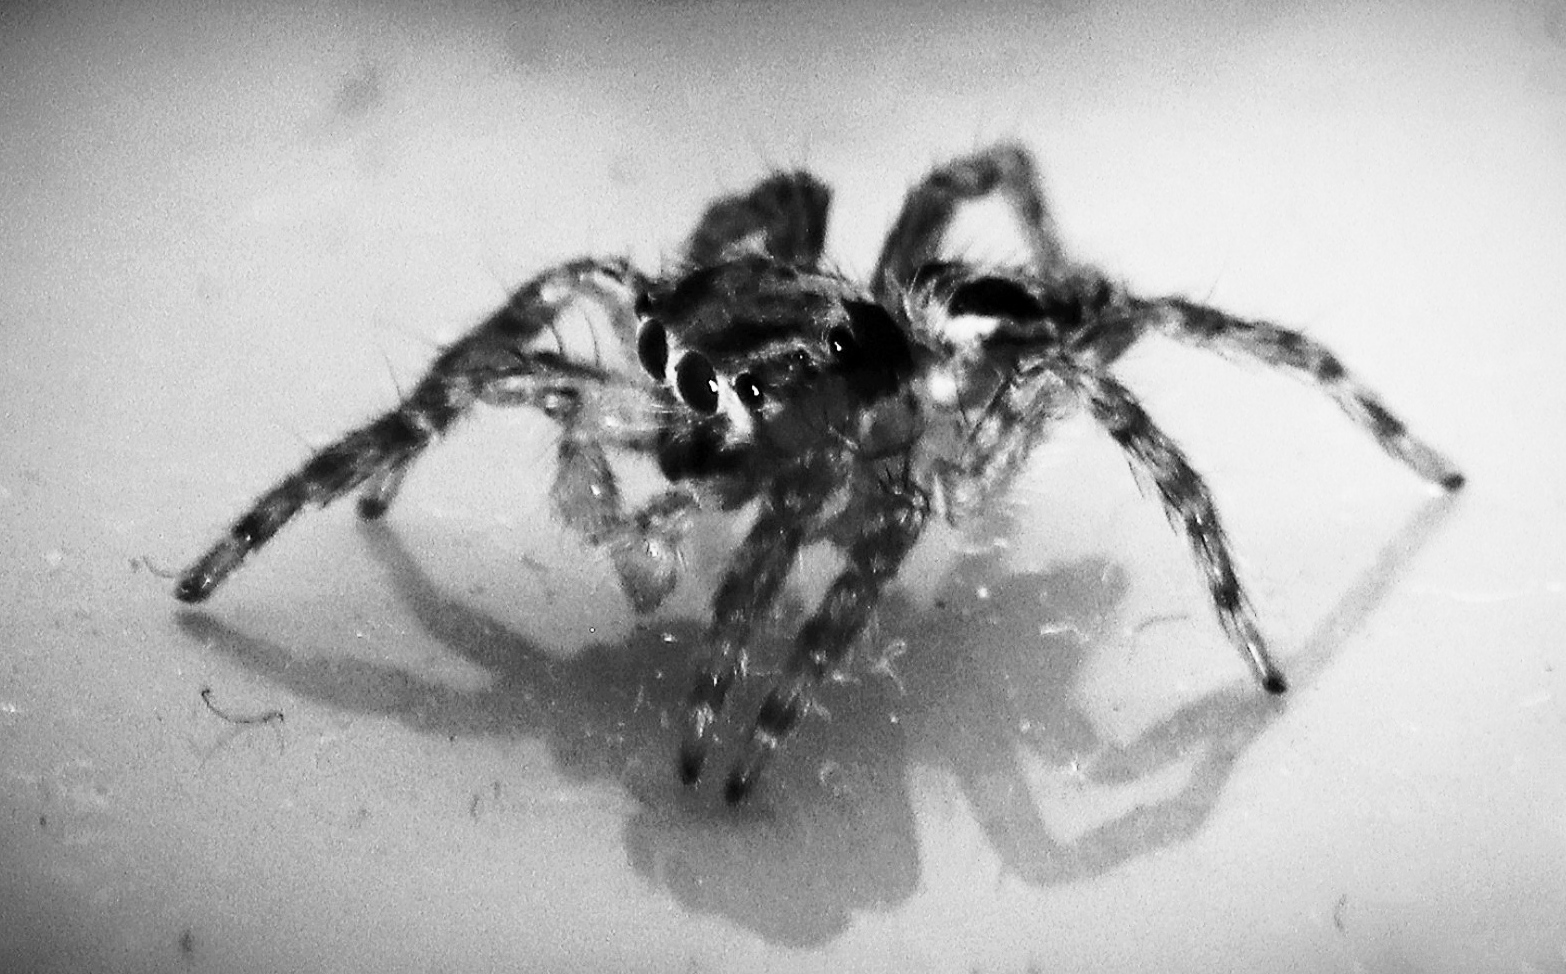 Spider on Black and White